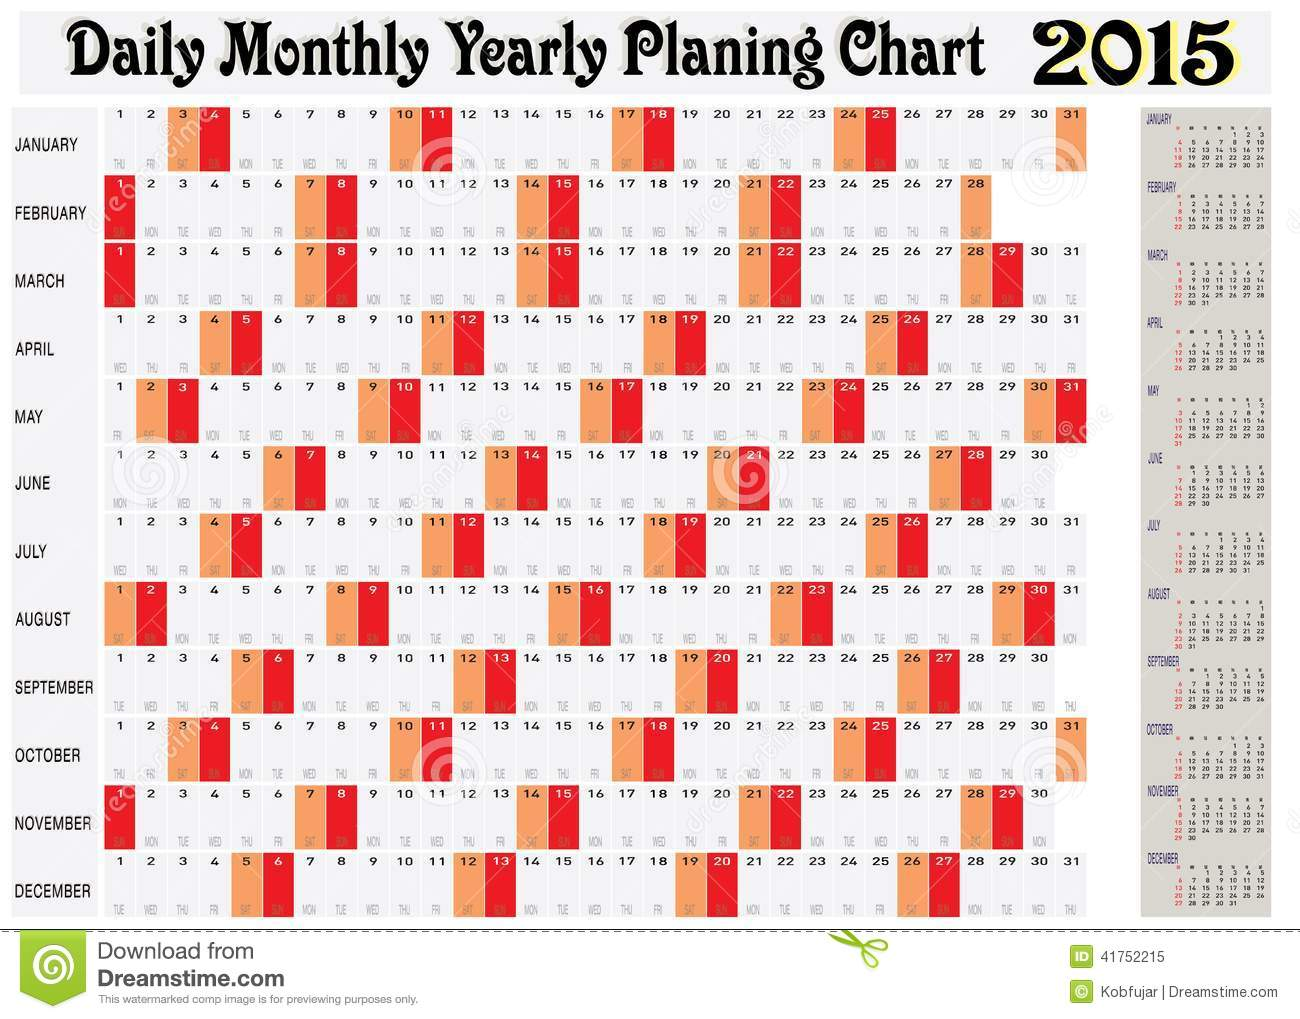 Daily Monthly Yearly Planing Chart 2015